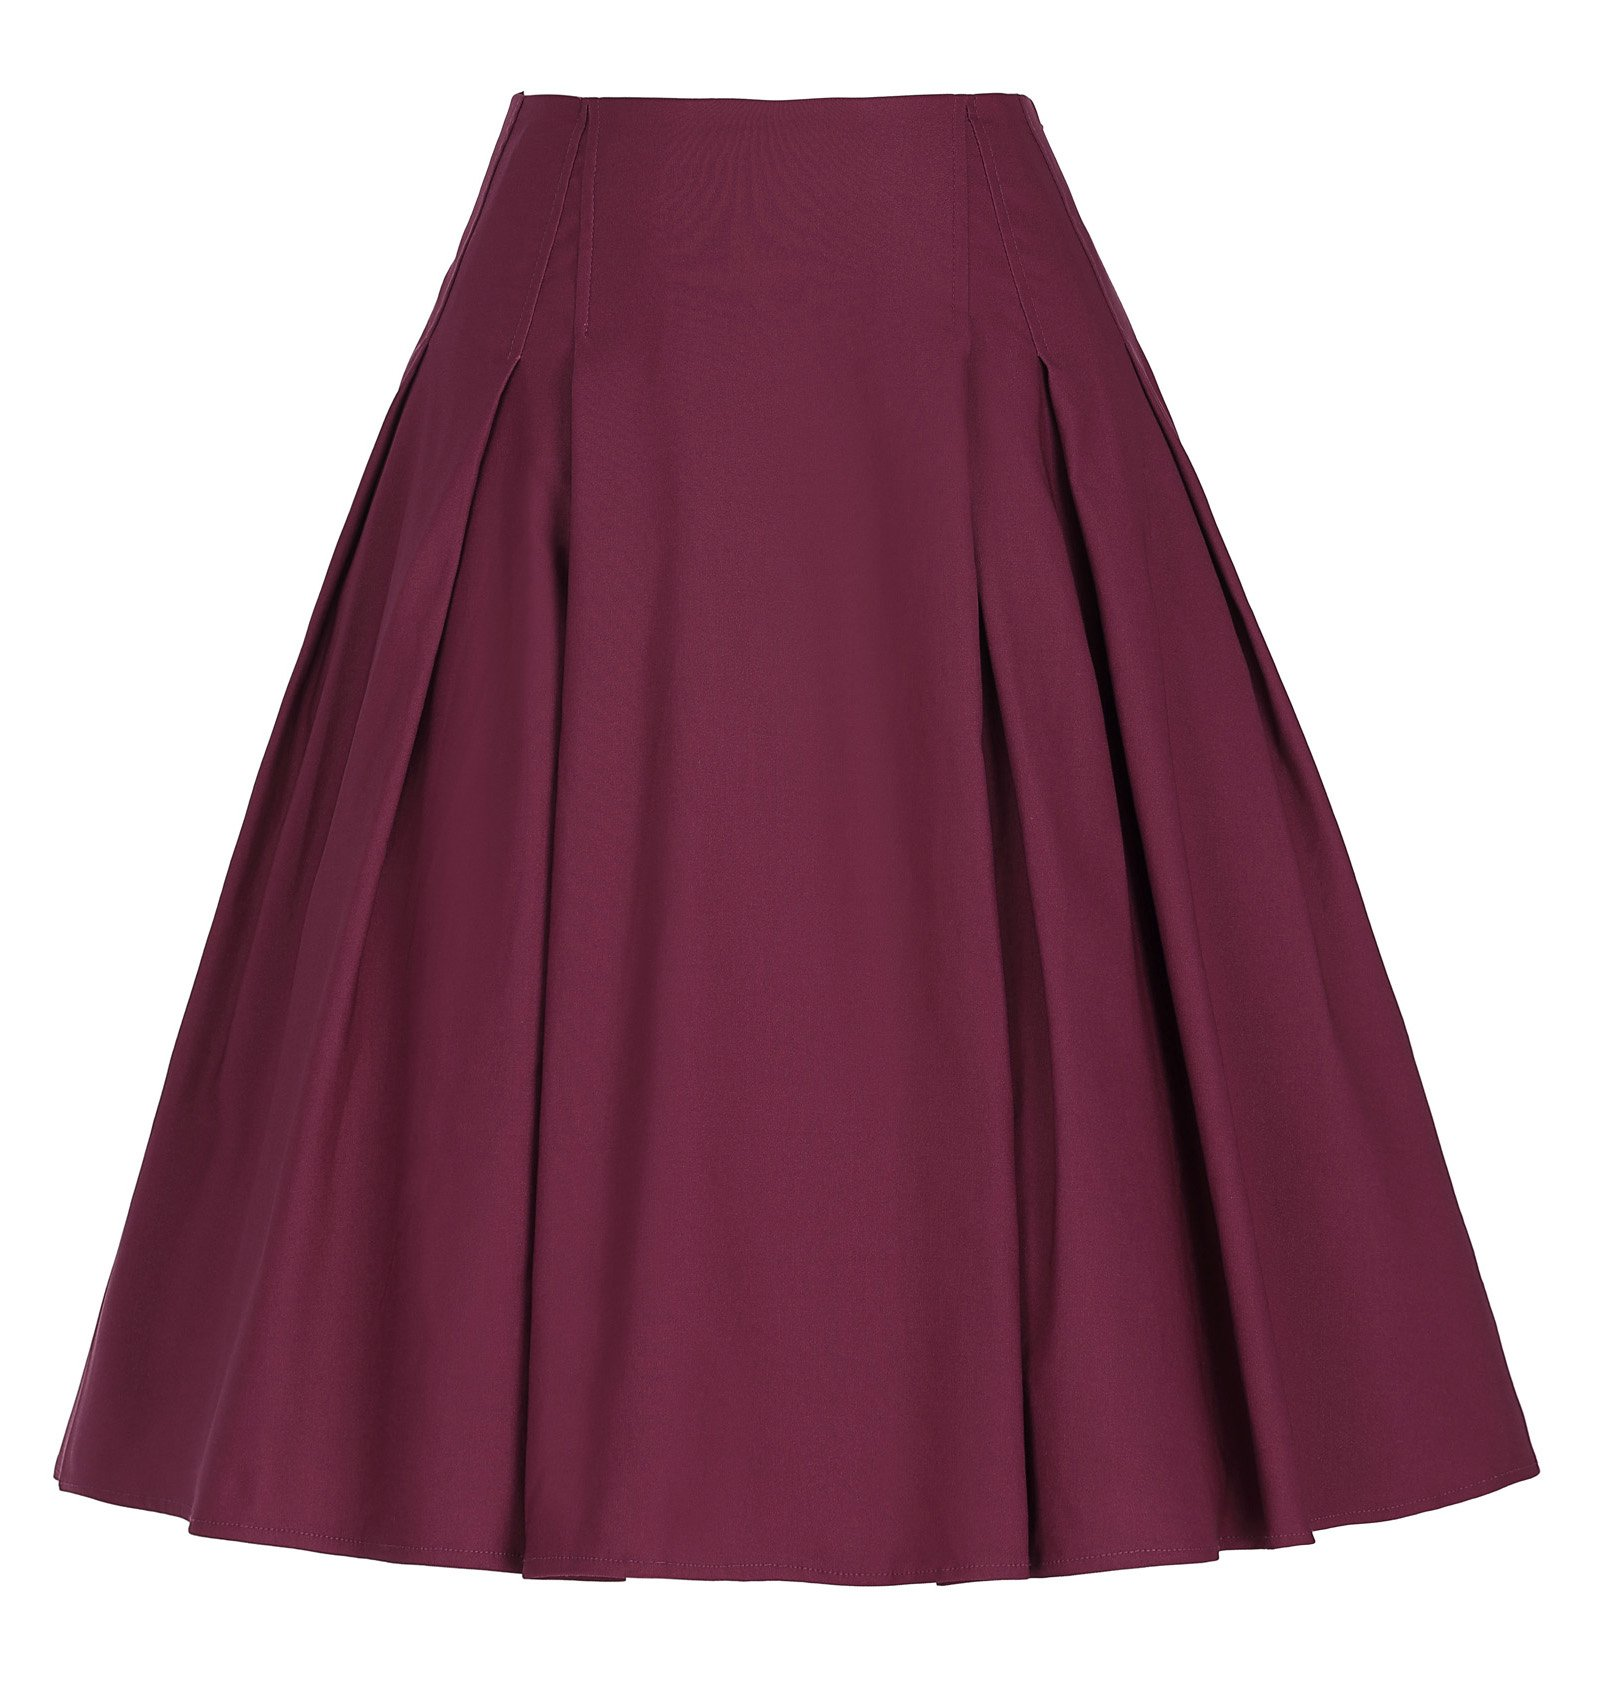 Paul Jones®Dress Women's Wine Red Vintage Pleated Skirt with Pockets Size S